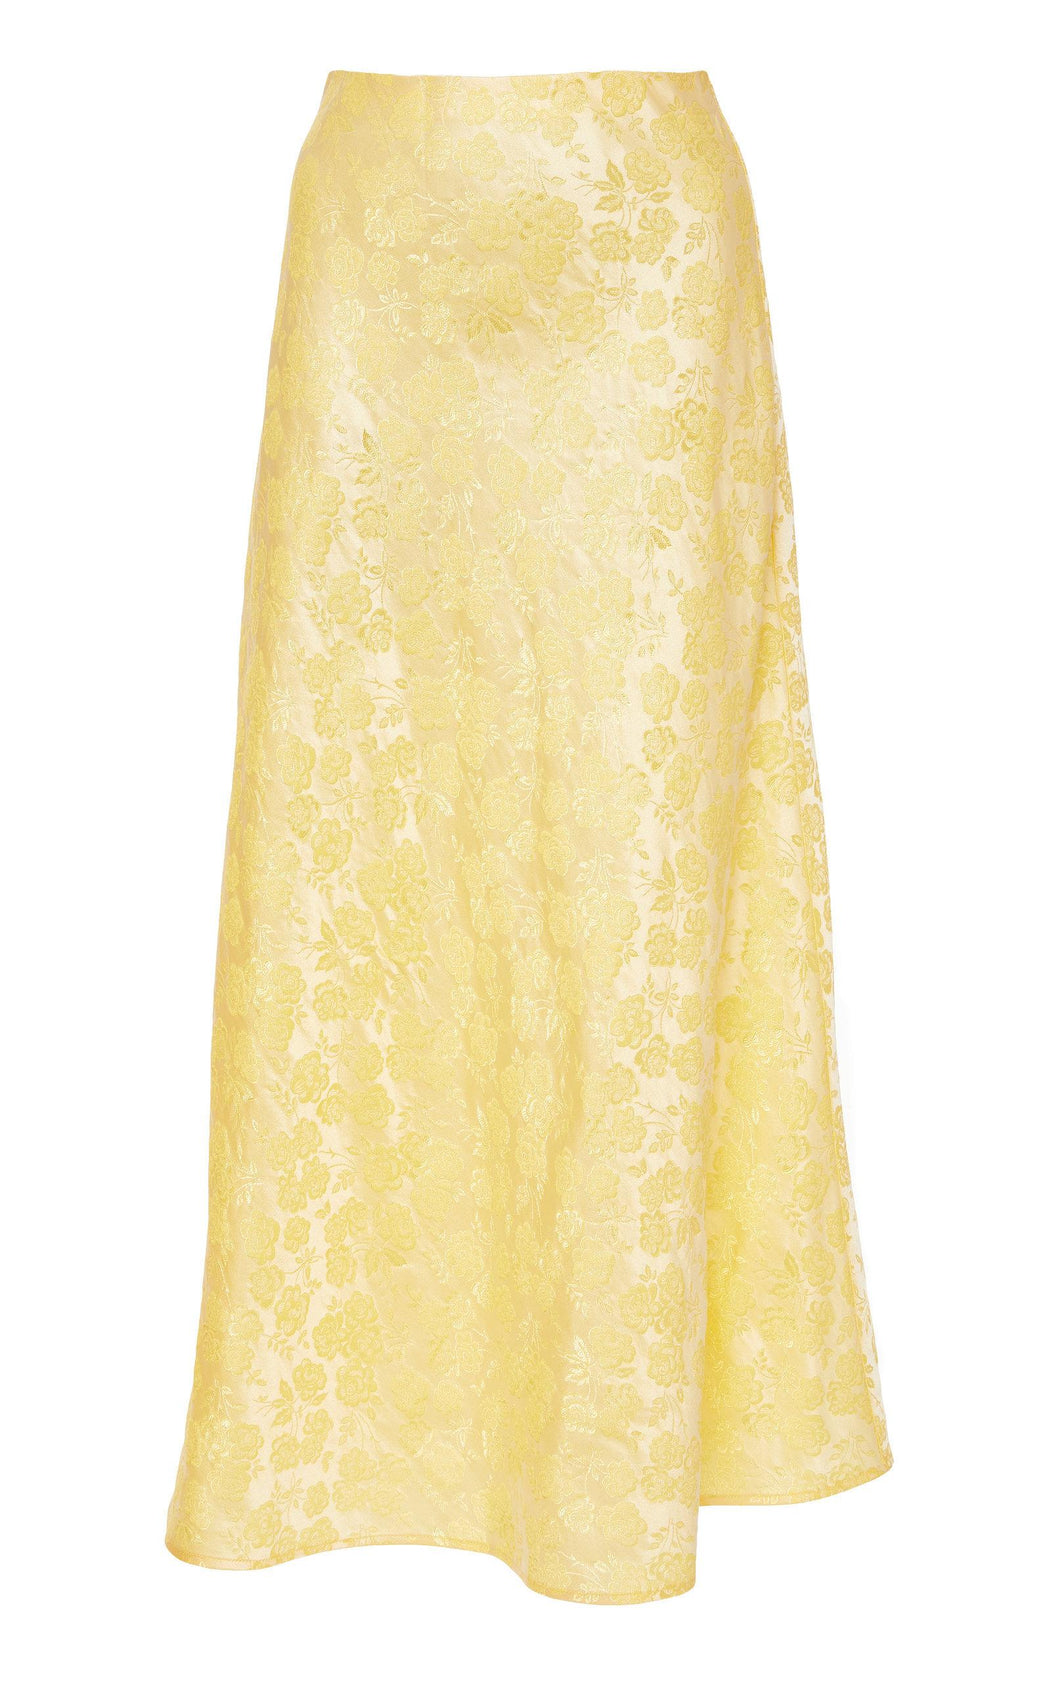 Crawford Yellow Floral Brocade Skirt